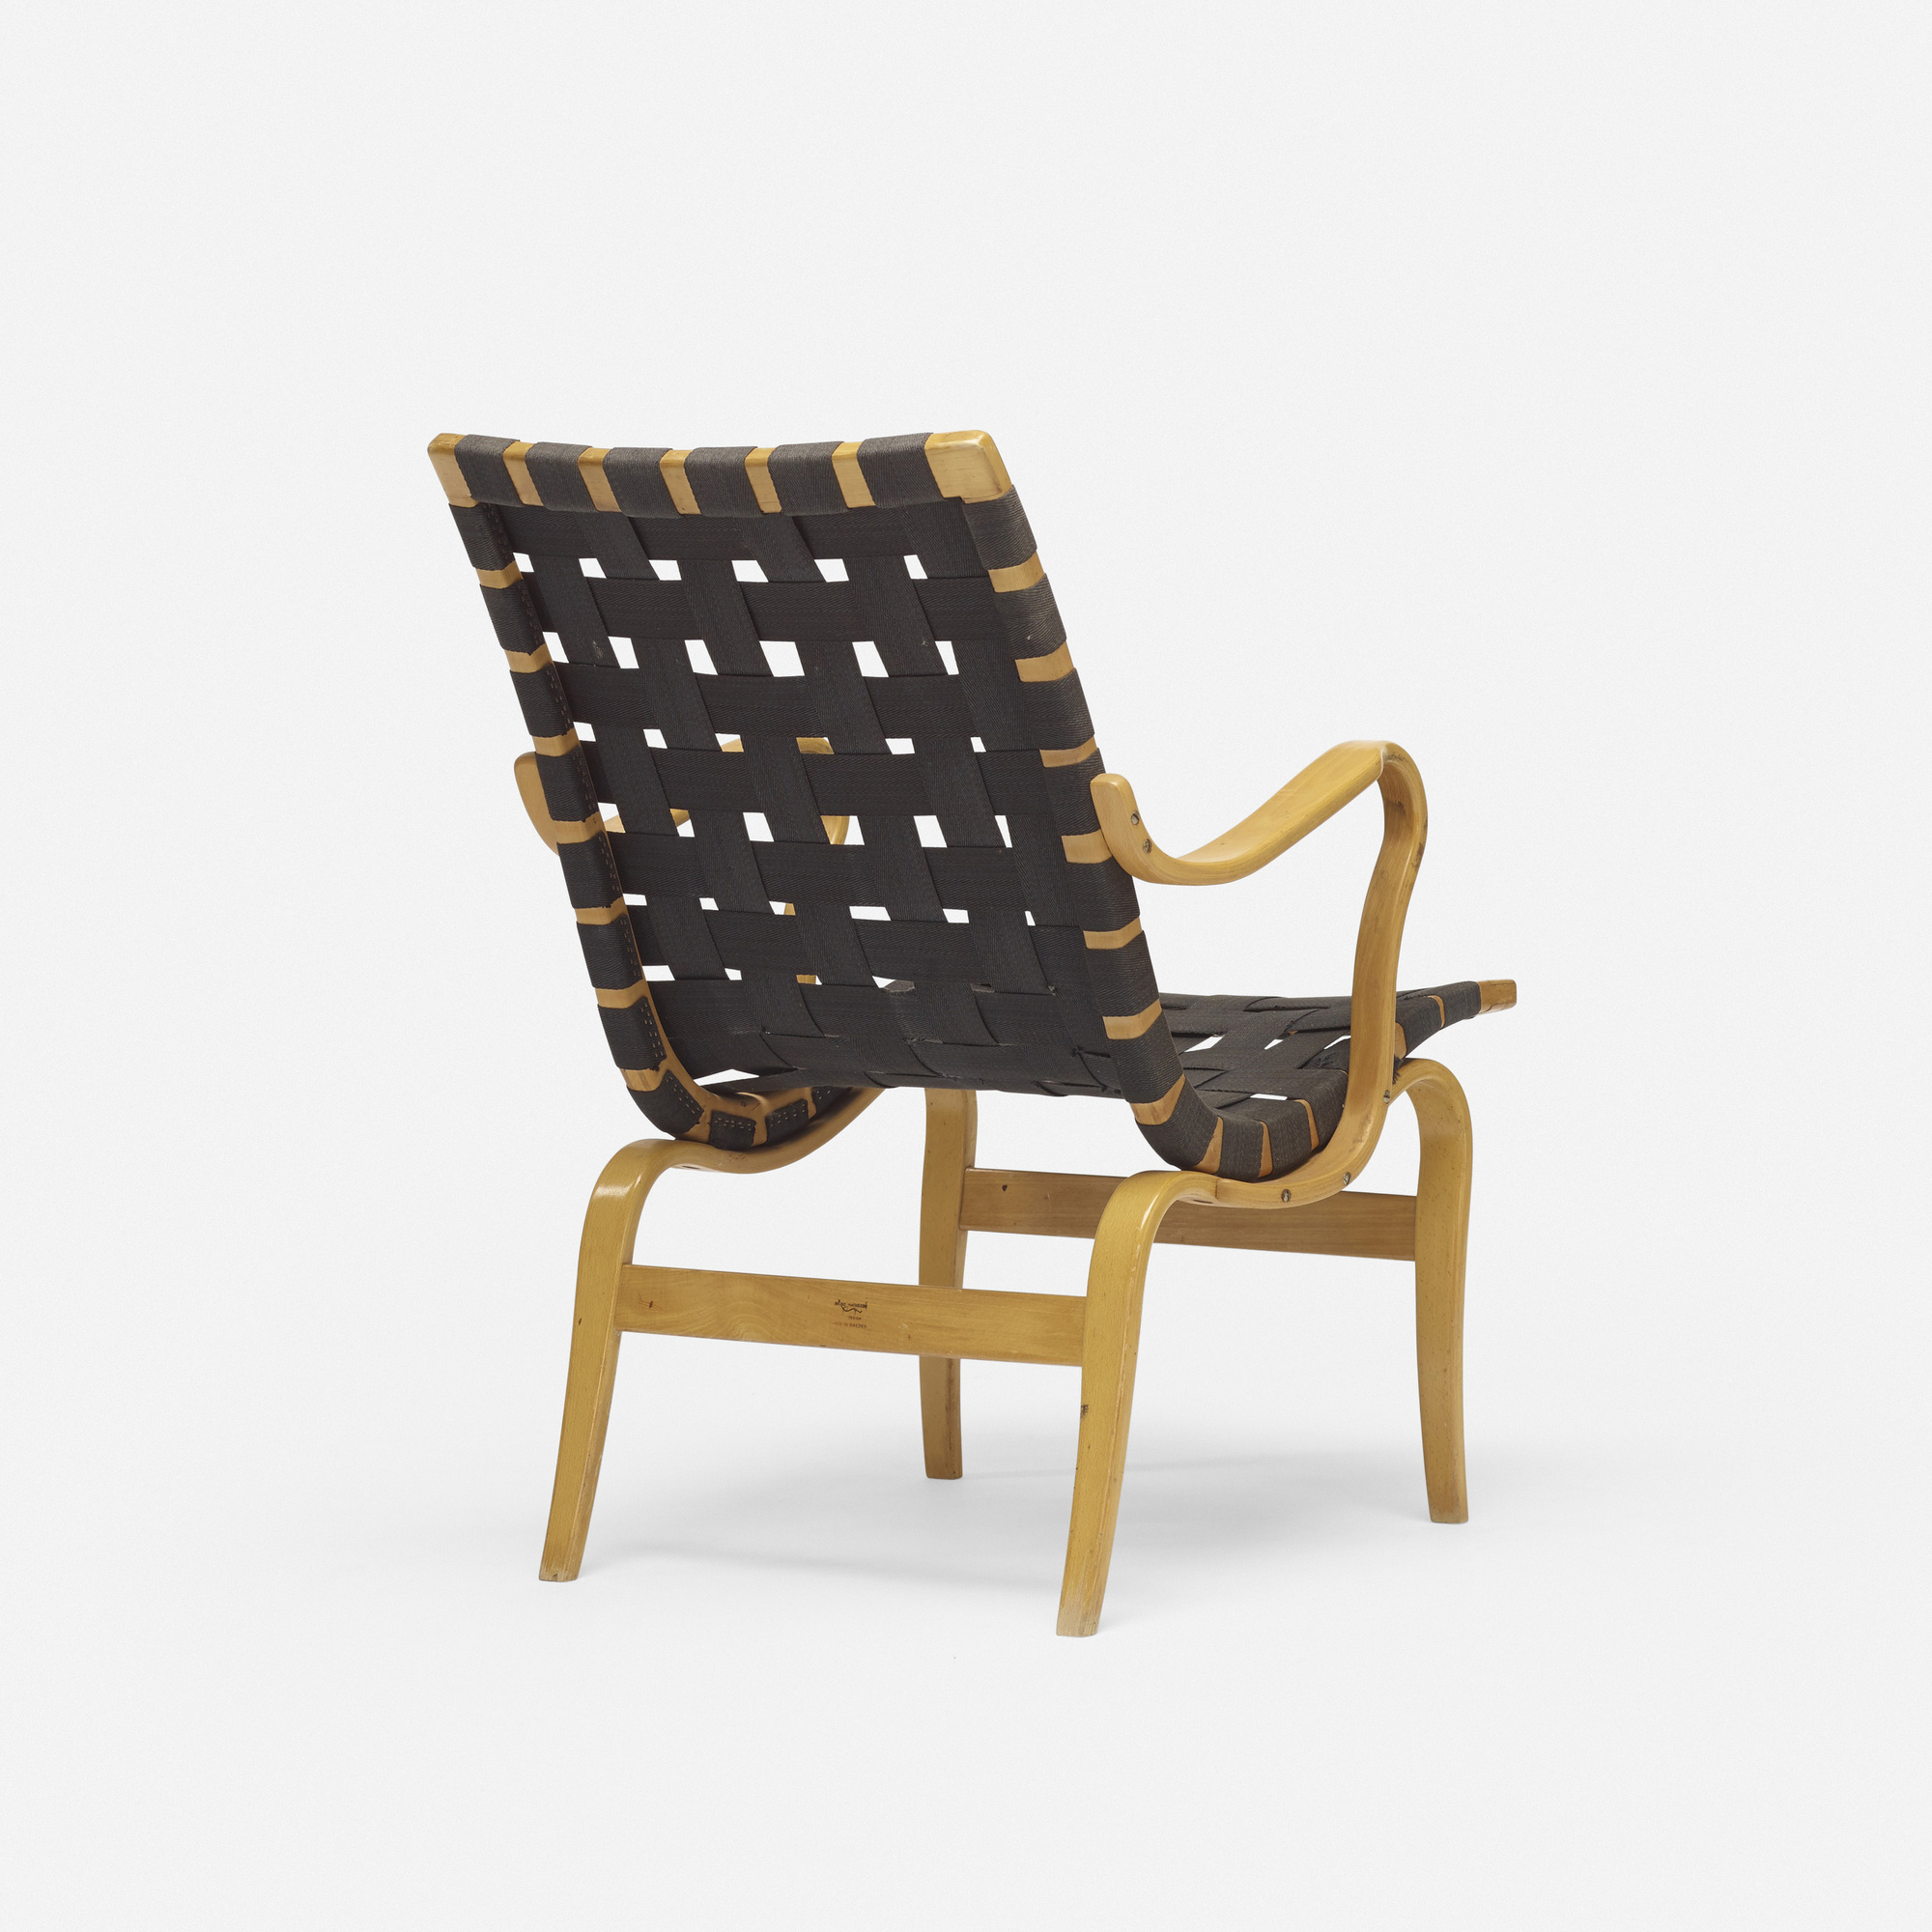 542: Bruno Mathsson / Eva chair (2 of 4)